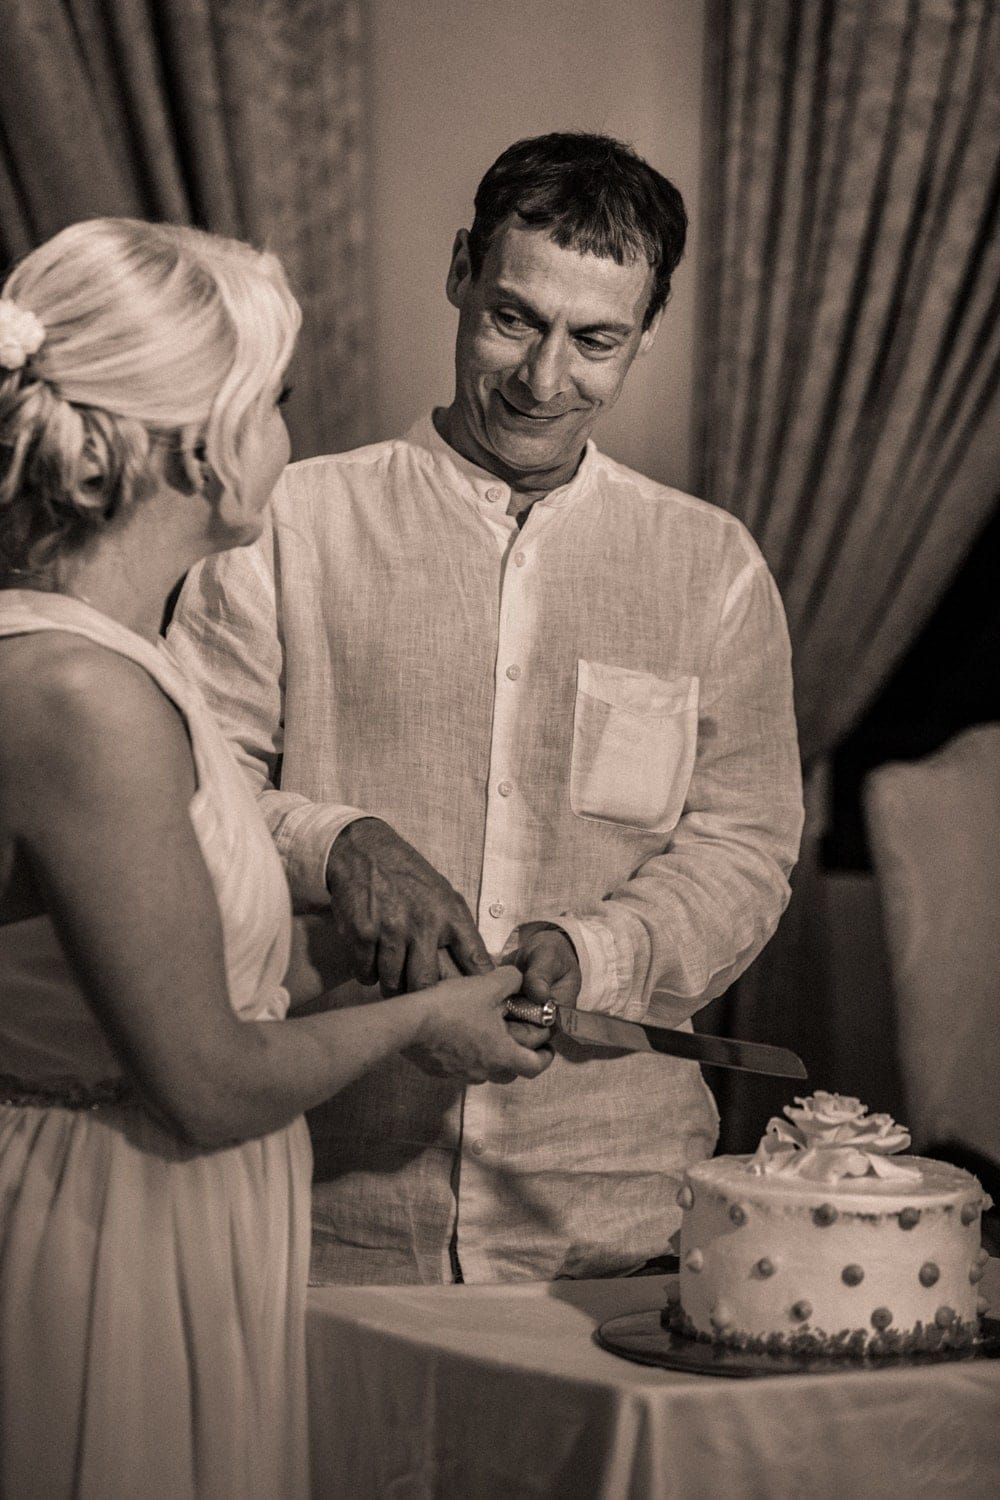 Just married couple cut their cake during wedding reception in Costa Rica.